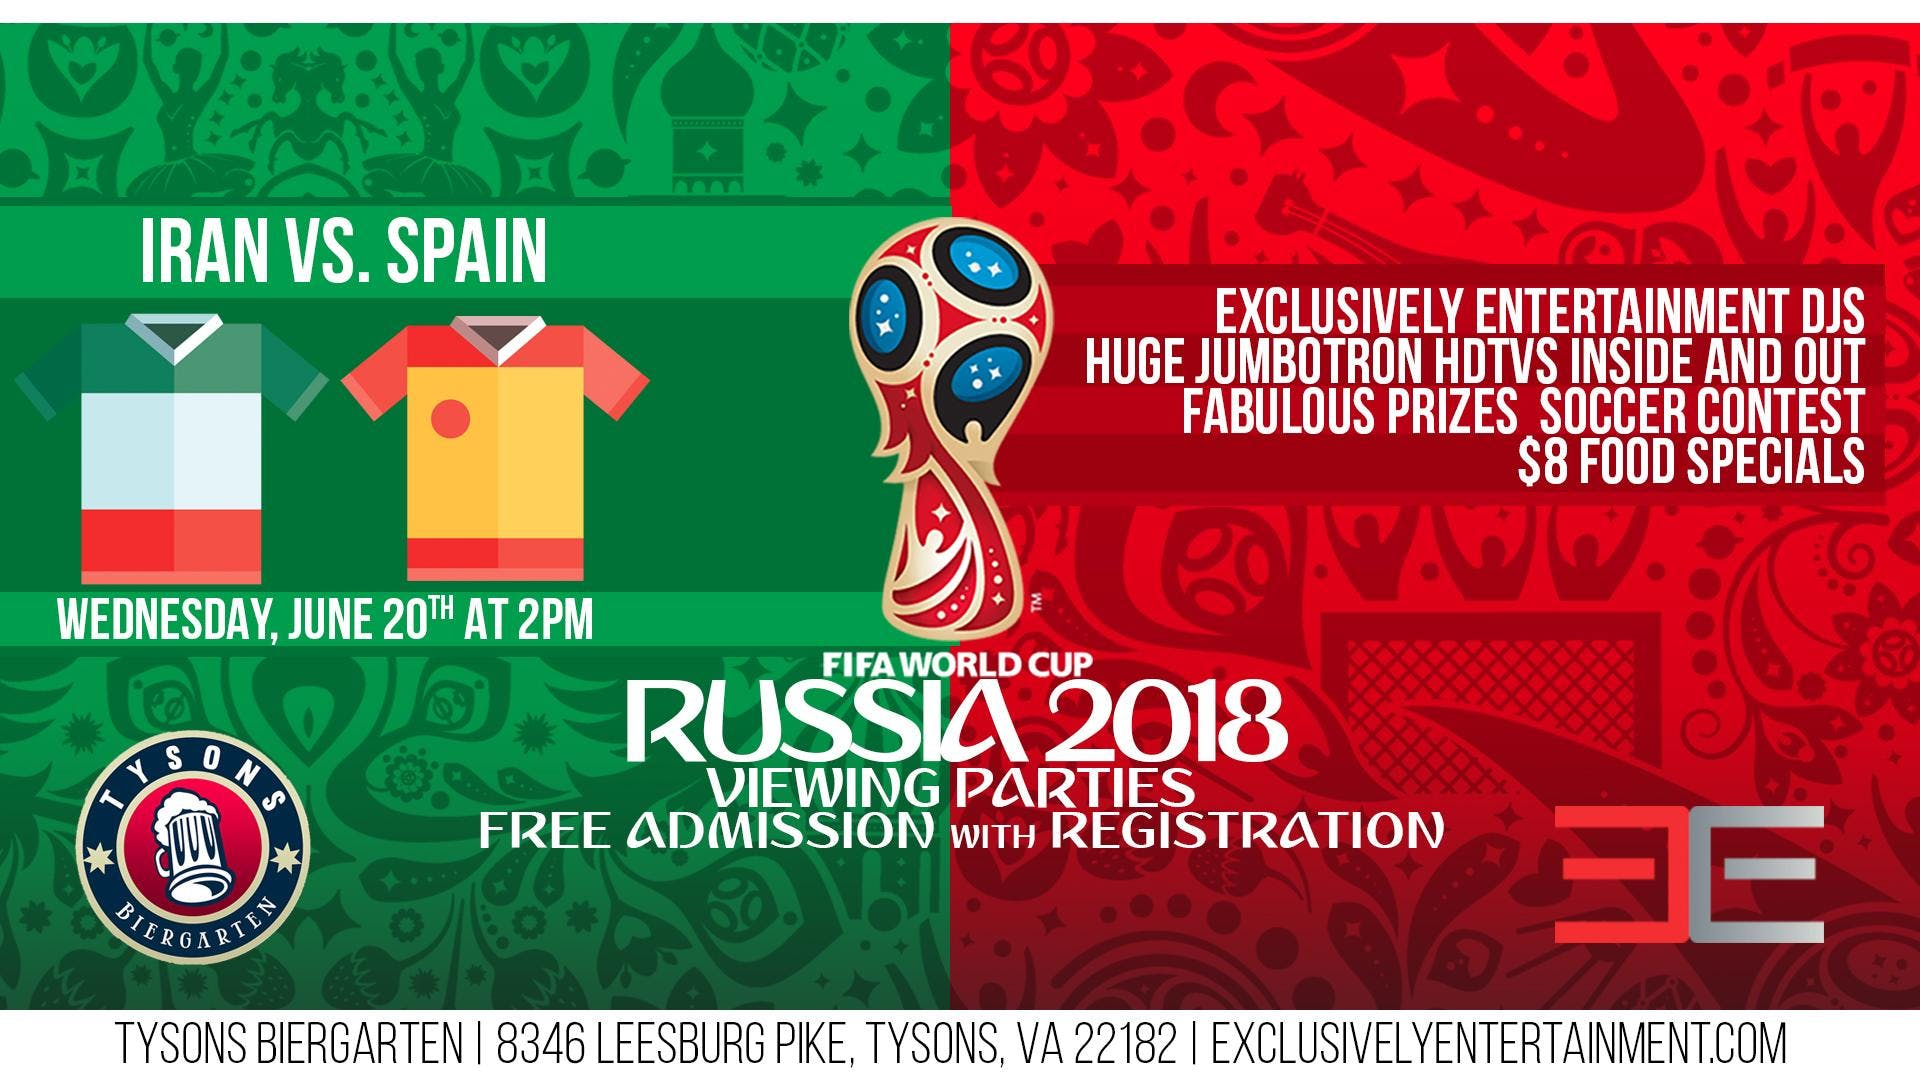 World Cup Viewing Party - Iran vs. Spain